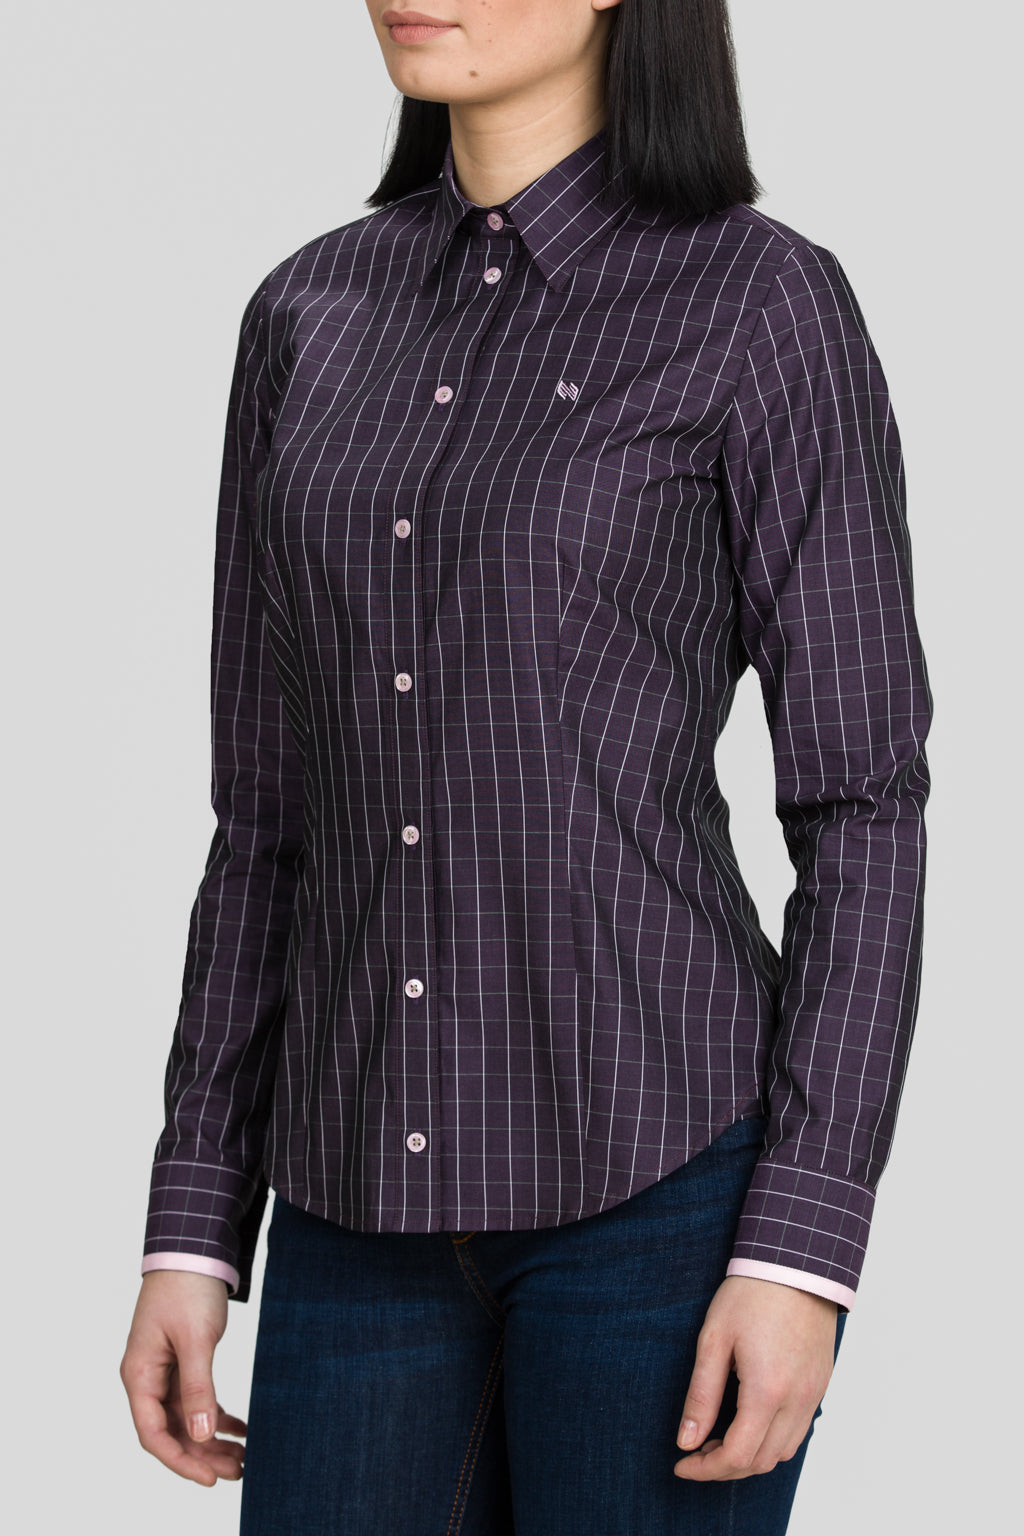 FRIGG ORIGINAL SLIM FIT SHIRT